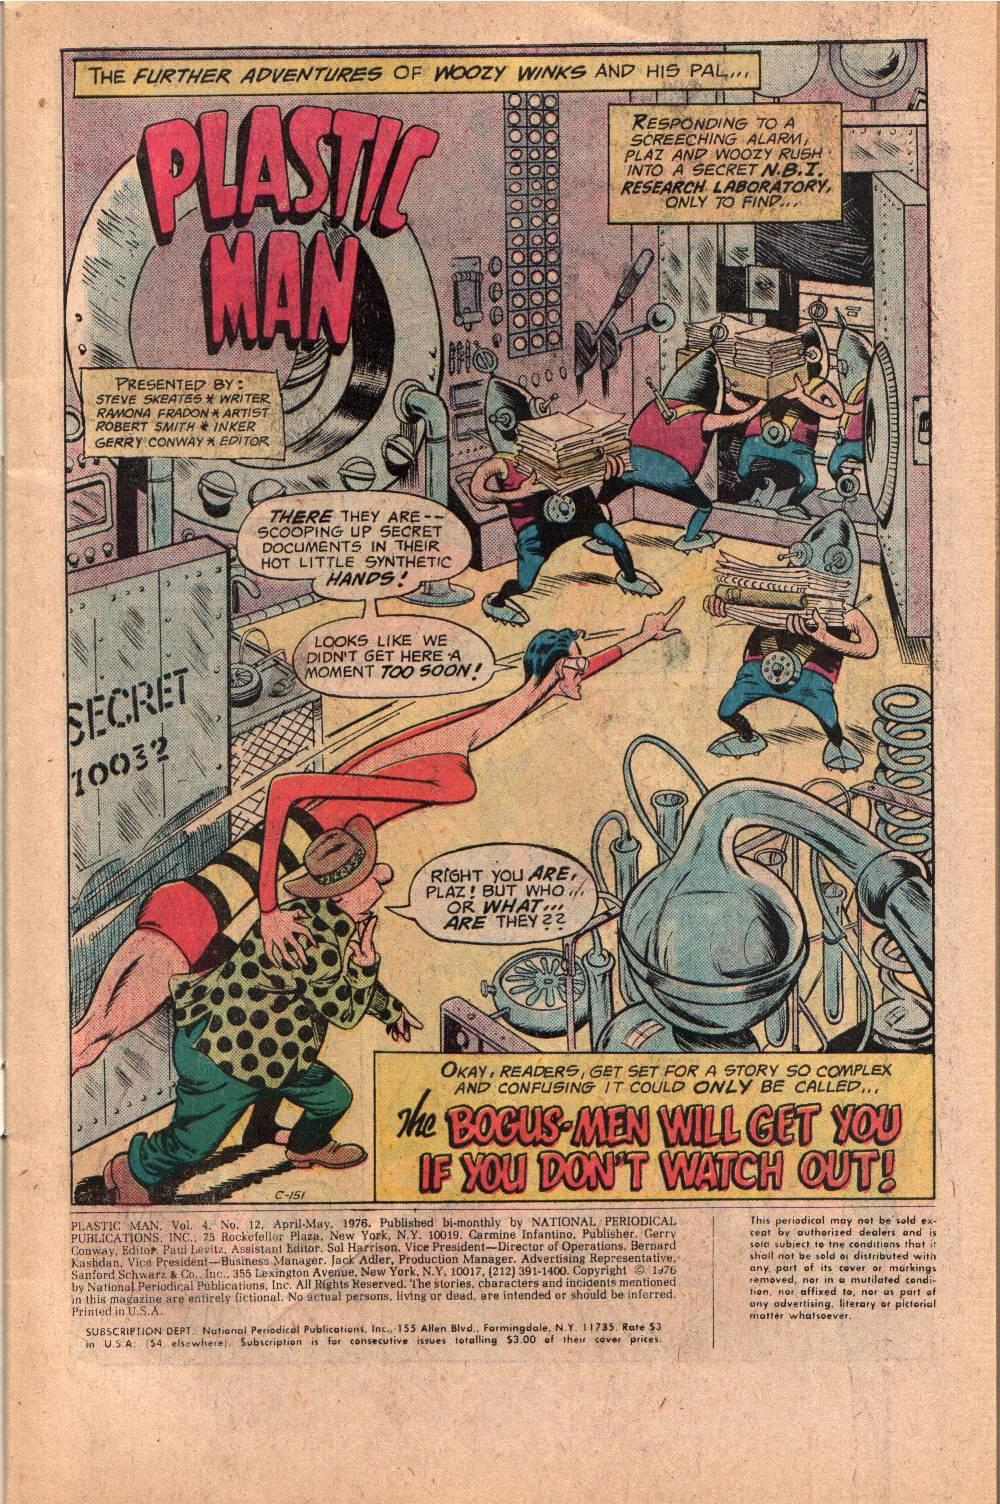 Plastic Man (1966) #12 pg1, penciled by Ramona Fradon & inked by Bob Smith.